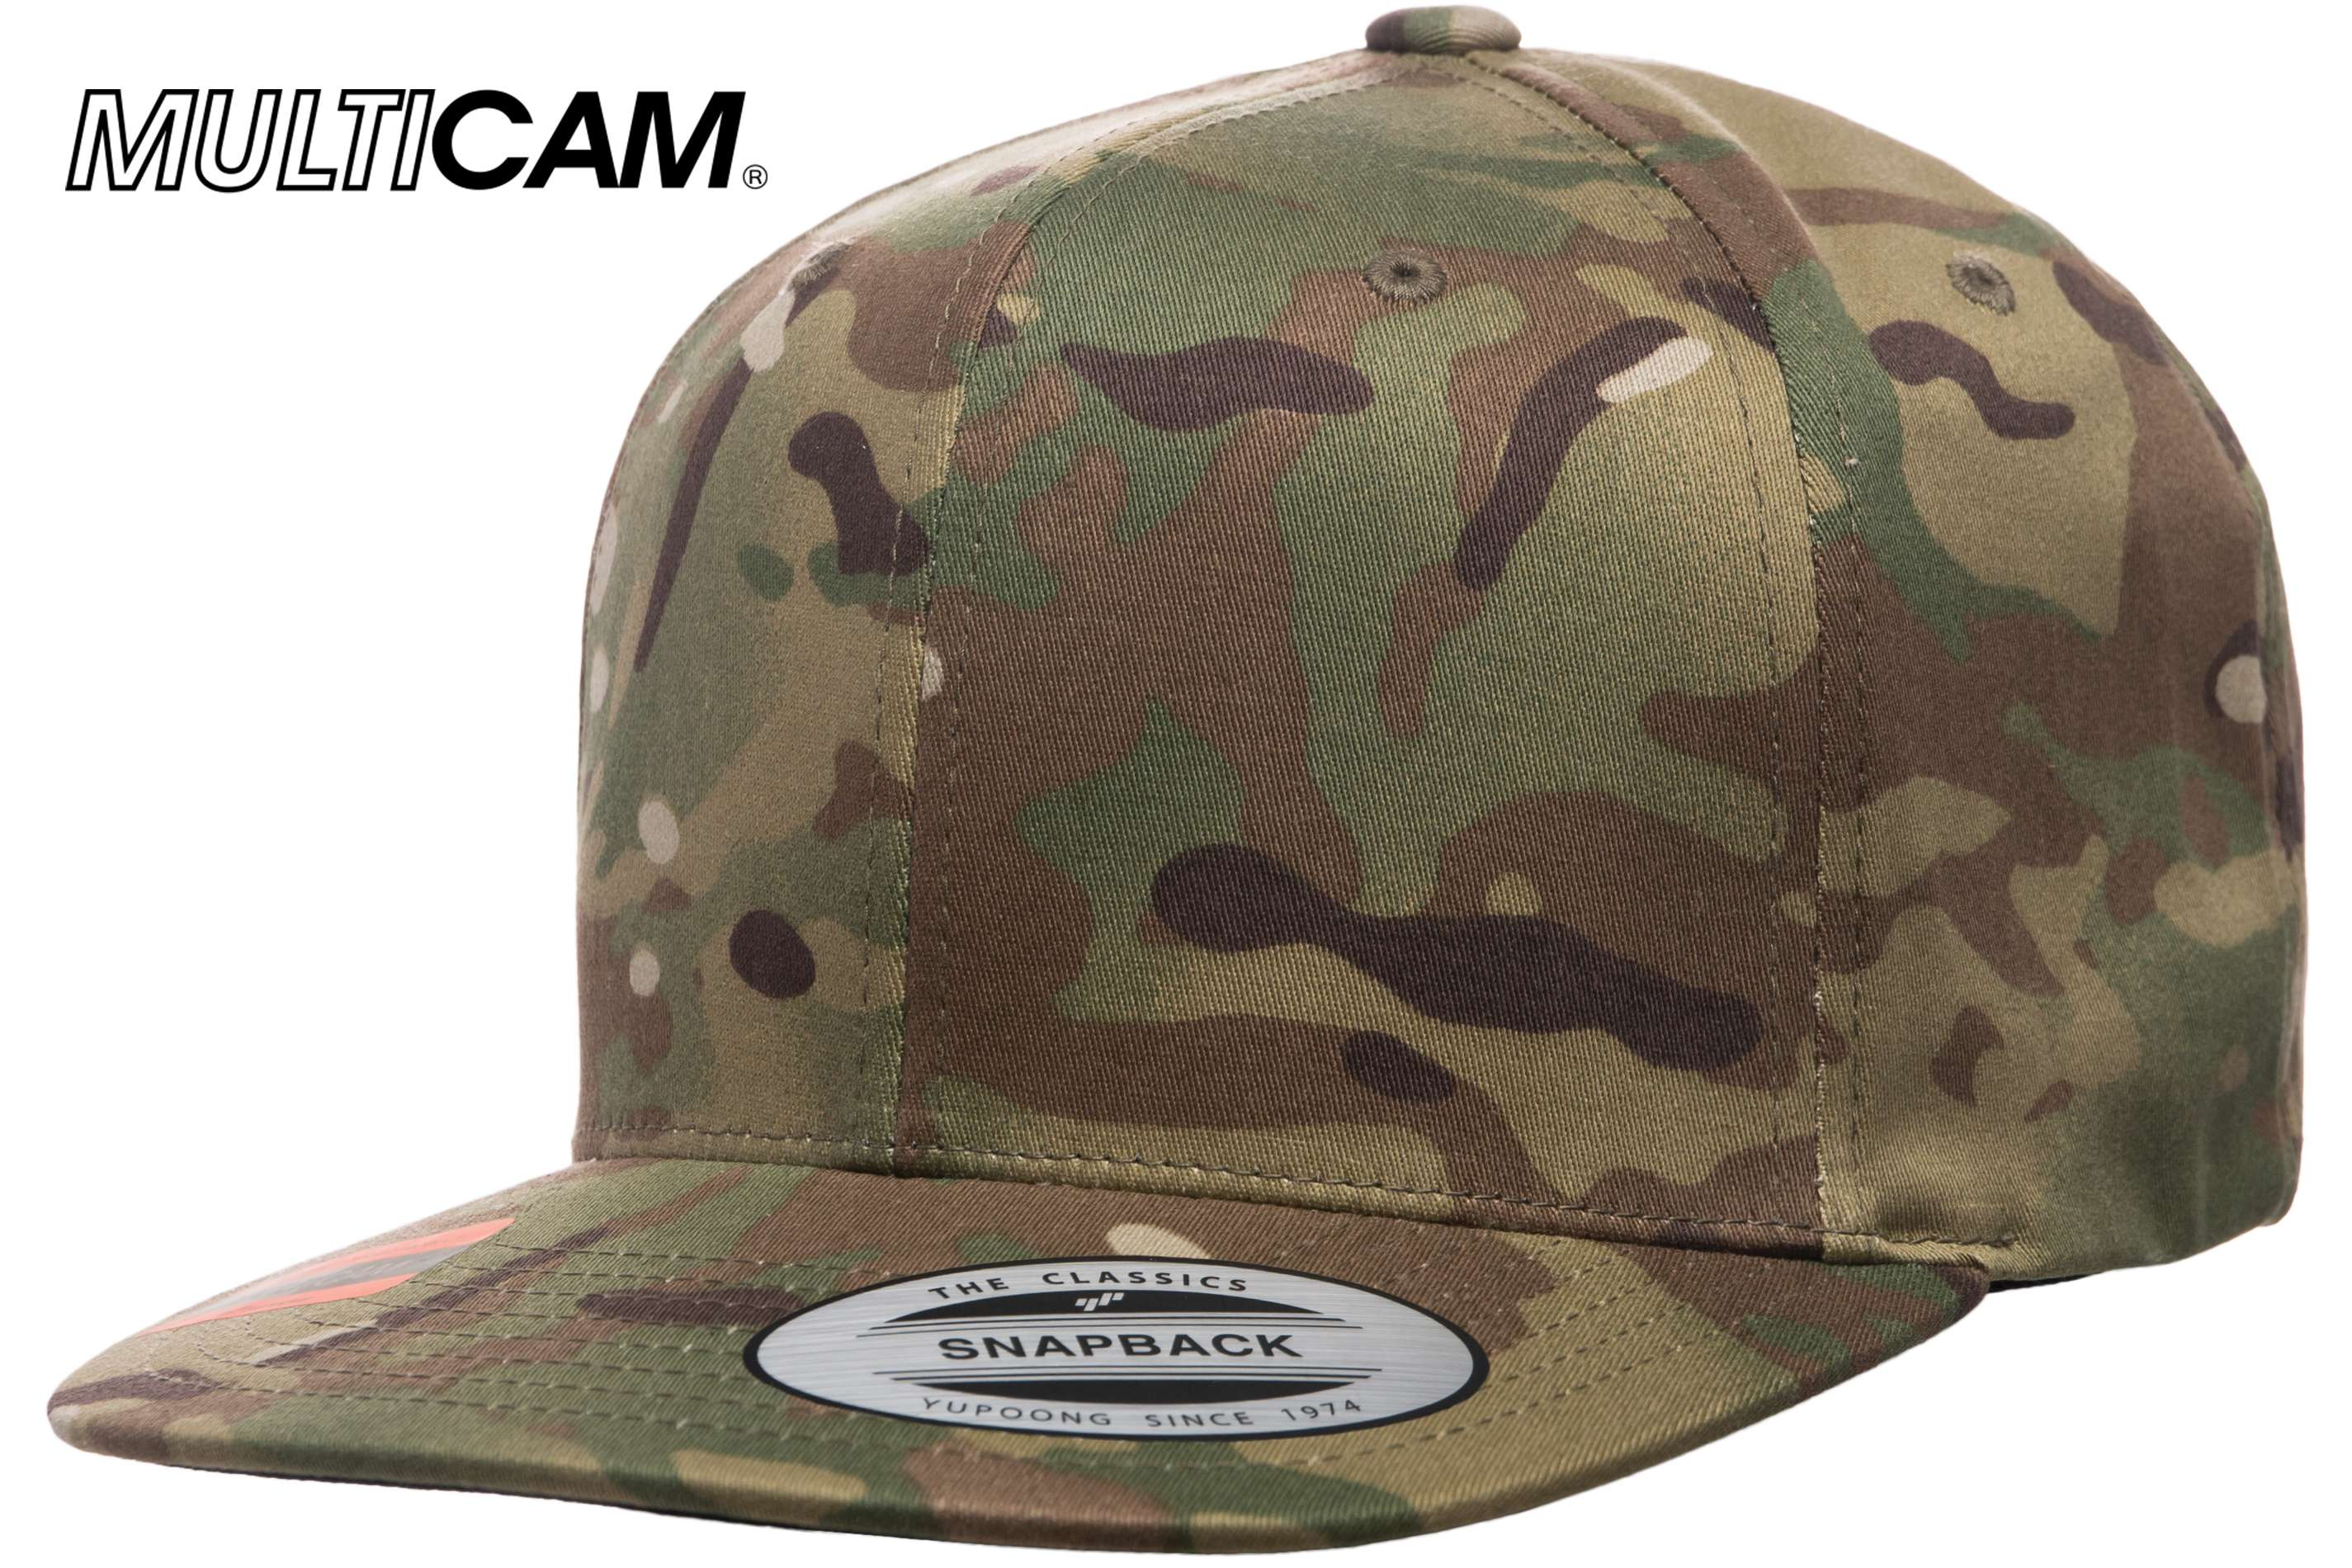 b2d9924f Yupoong 6089 Multicam - Custom Embroidery in Chula Vista|Precision Threads  Embroidery